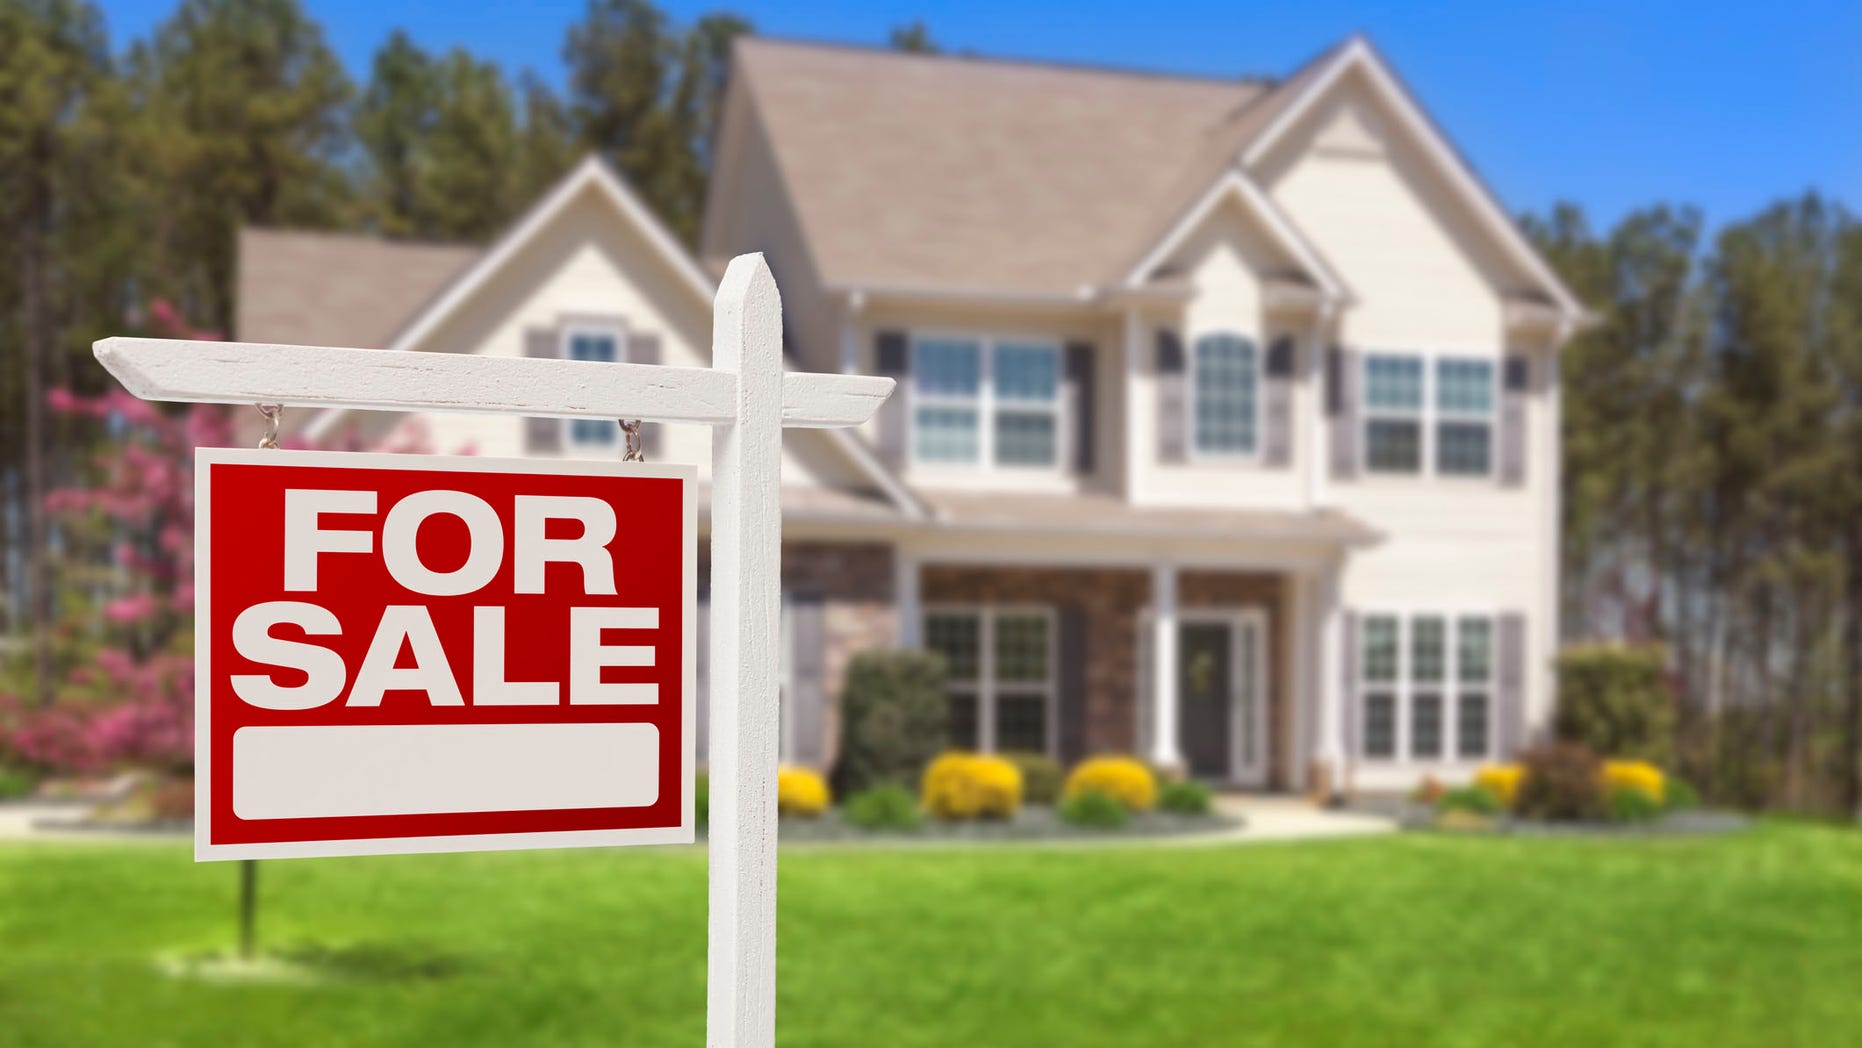 Westlake Legal Group home-for-sale-hed The one thing no homeowner wants to hear from a buyer Realtor.com fox-news/real-estate fnc/real-estate fnc Daniel Bortz article 956c35af-0bbc-57be-85fc-78412103198a